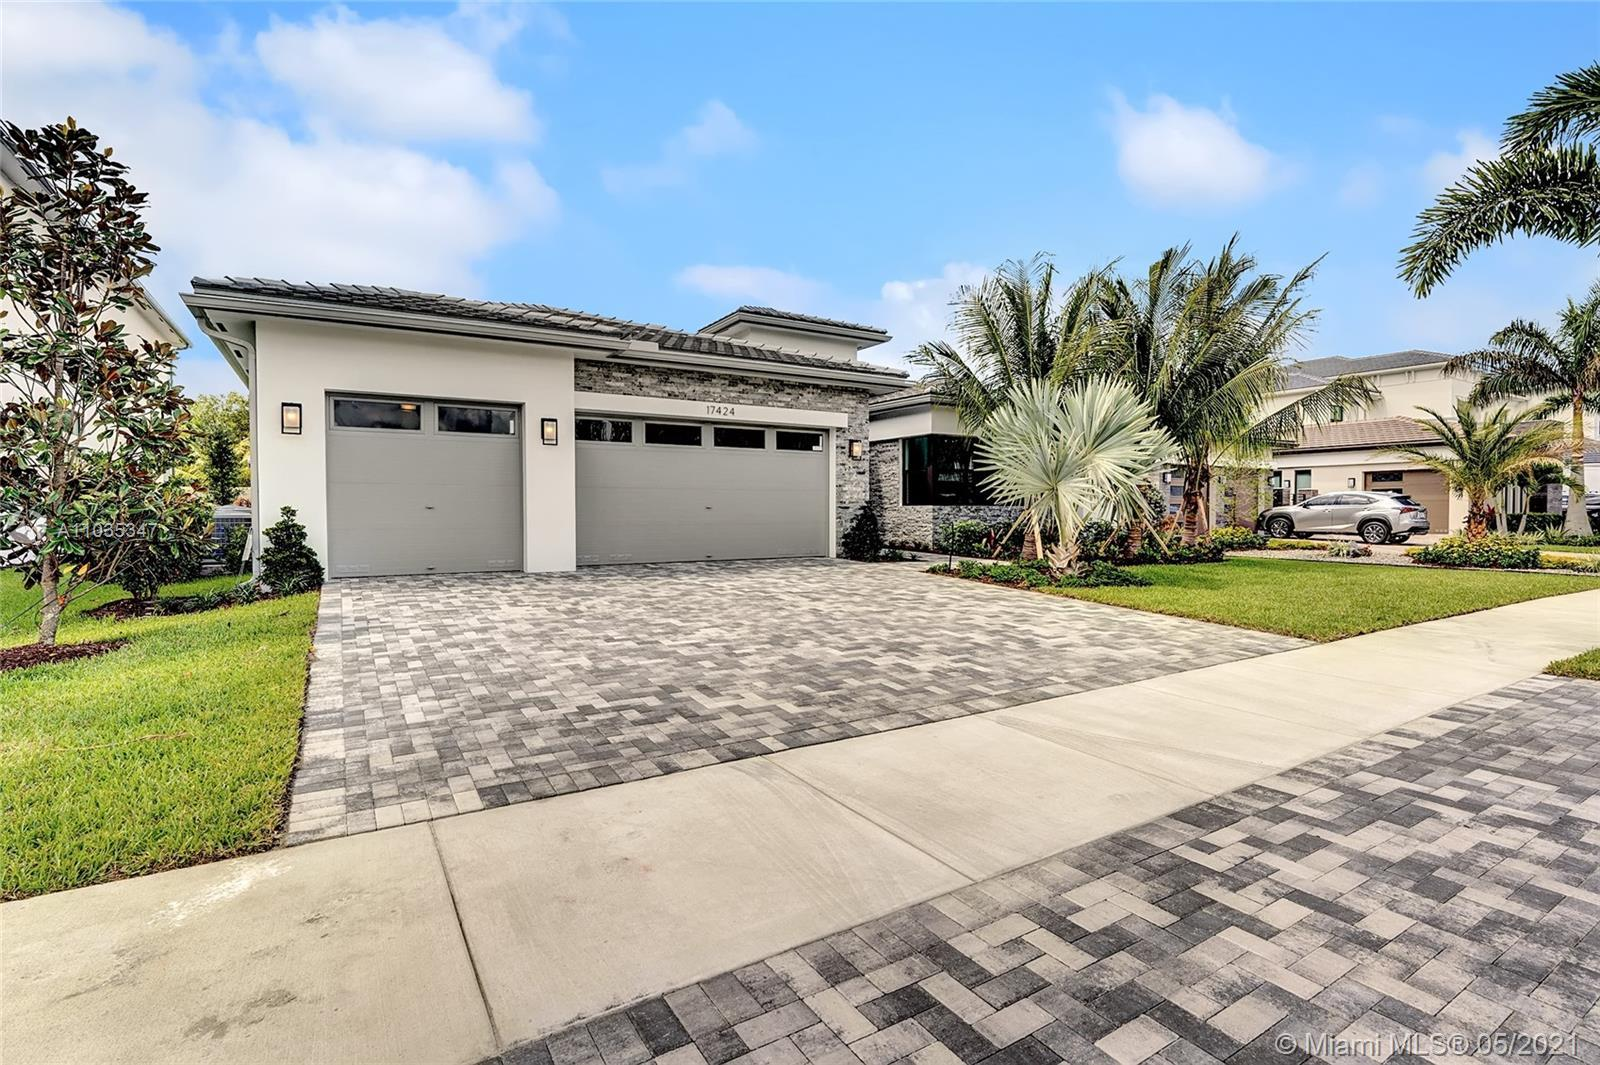 Don't miss out on your chance to own the last BRAND NEW Coastal Collection home in Boca Bridges! Per